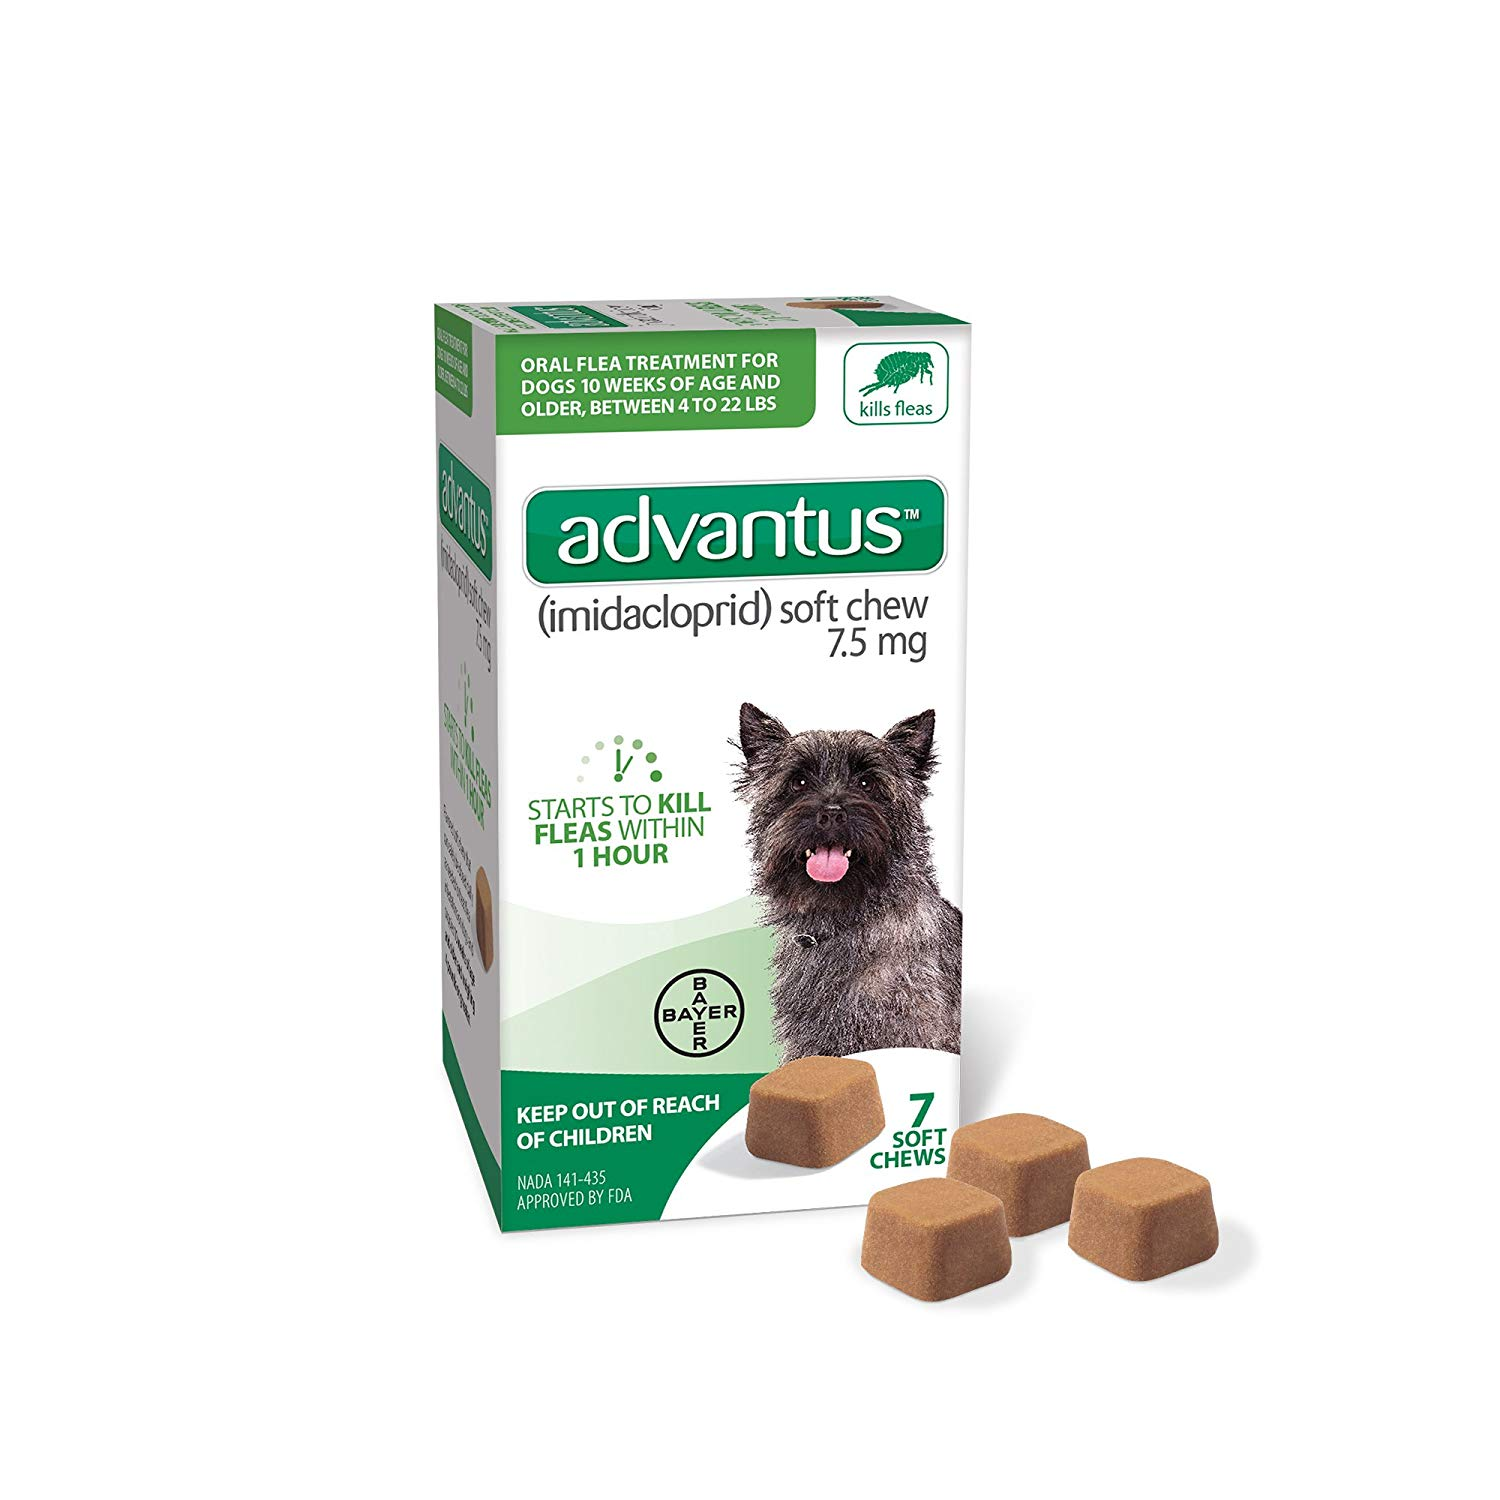 Bayer's Advantus Soft Chew